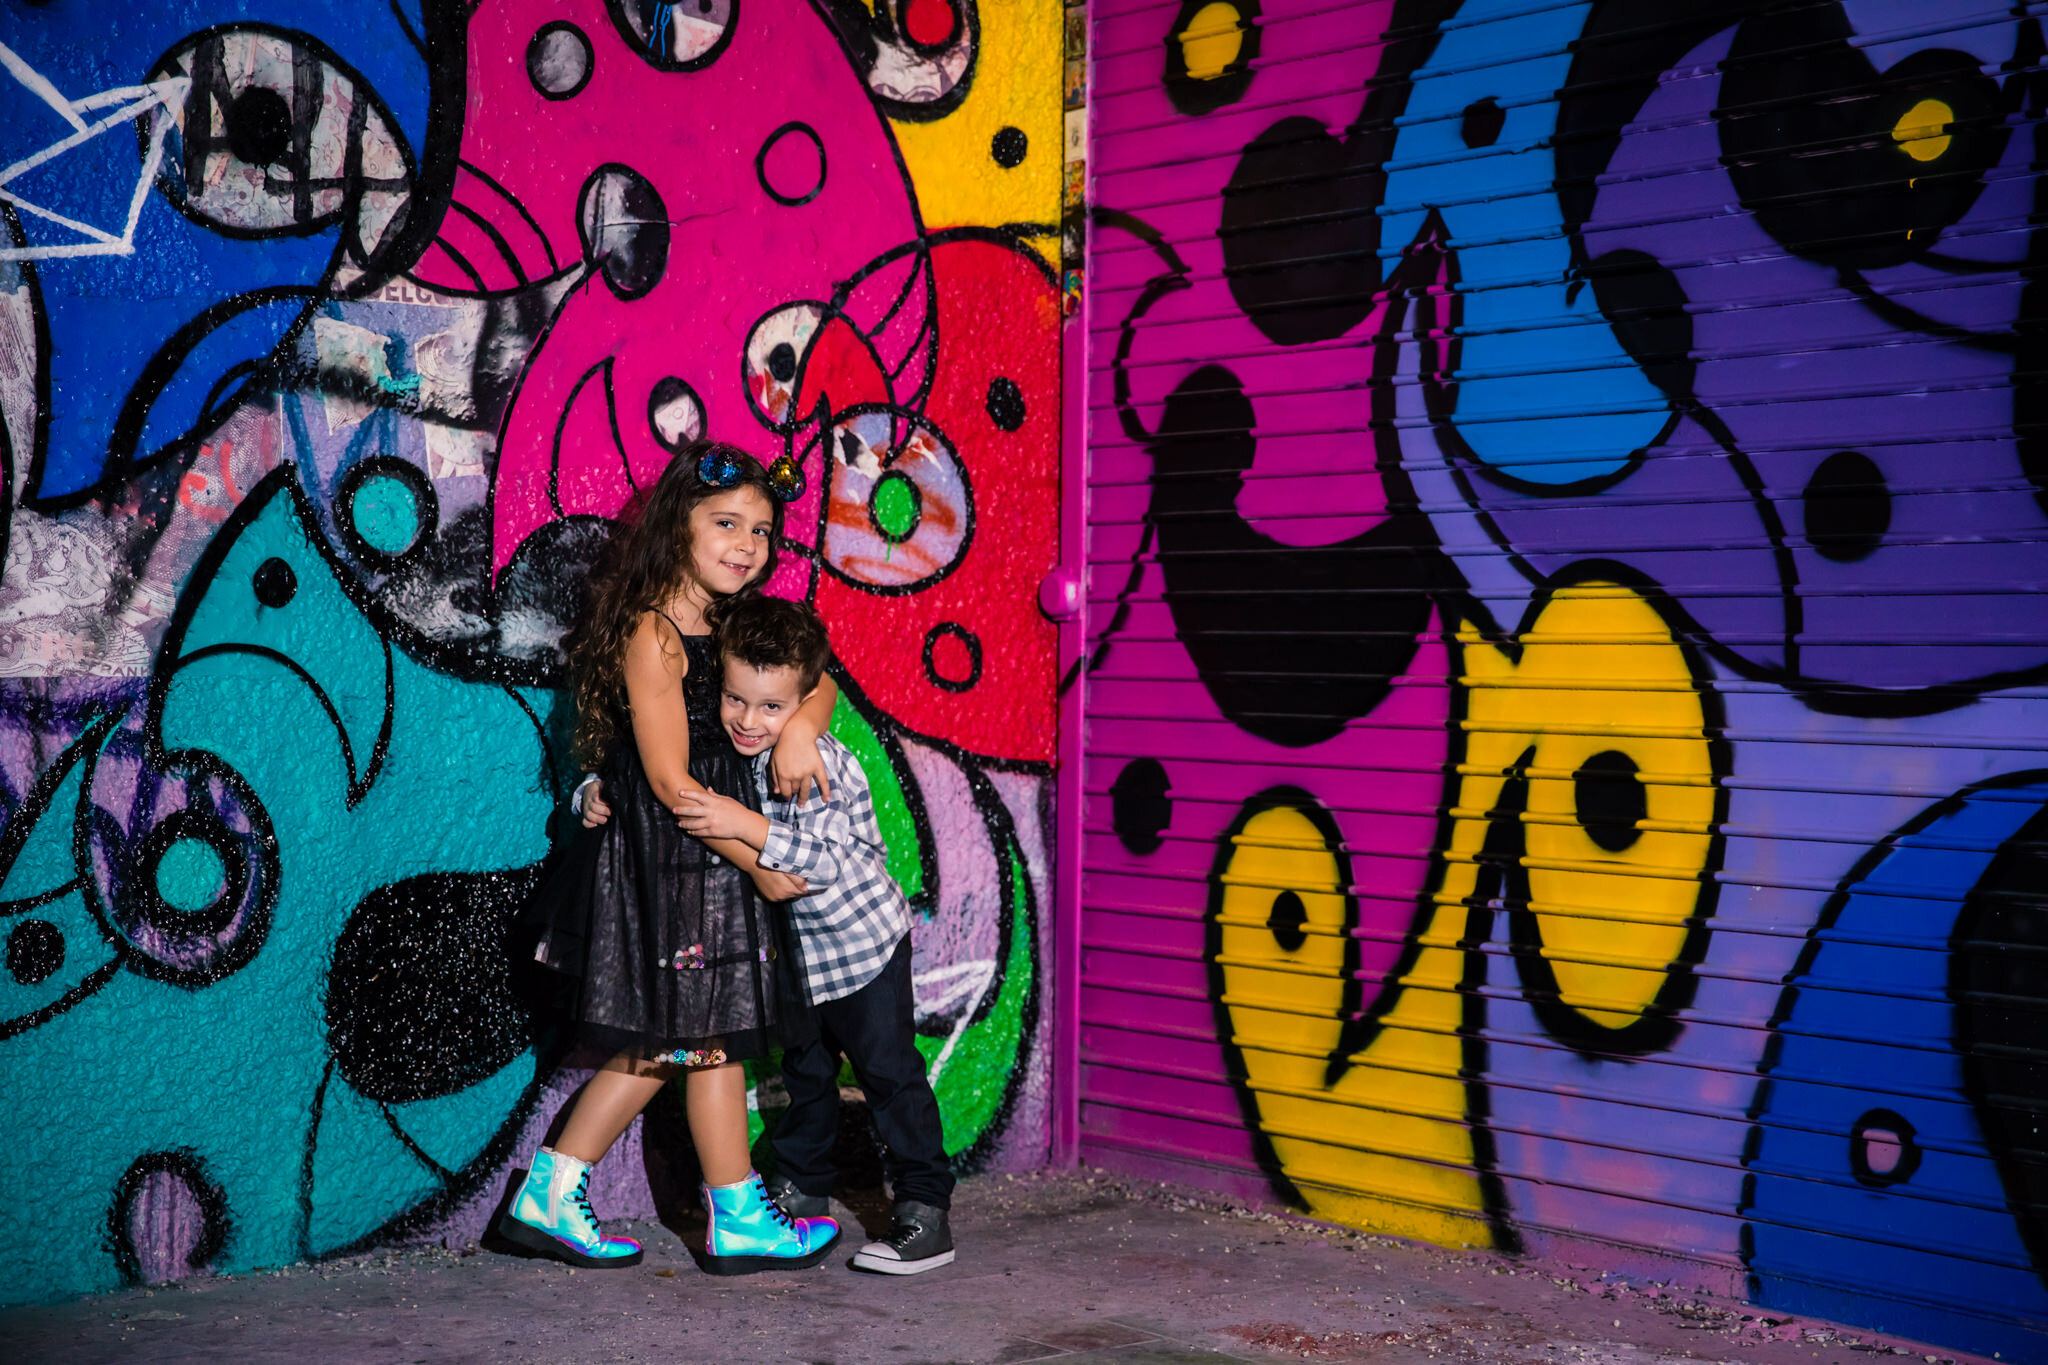 so-you-by-erica-sue-wynwood-miami-family-photo-session-night-flash-photography-0877.JPG